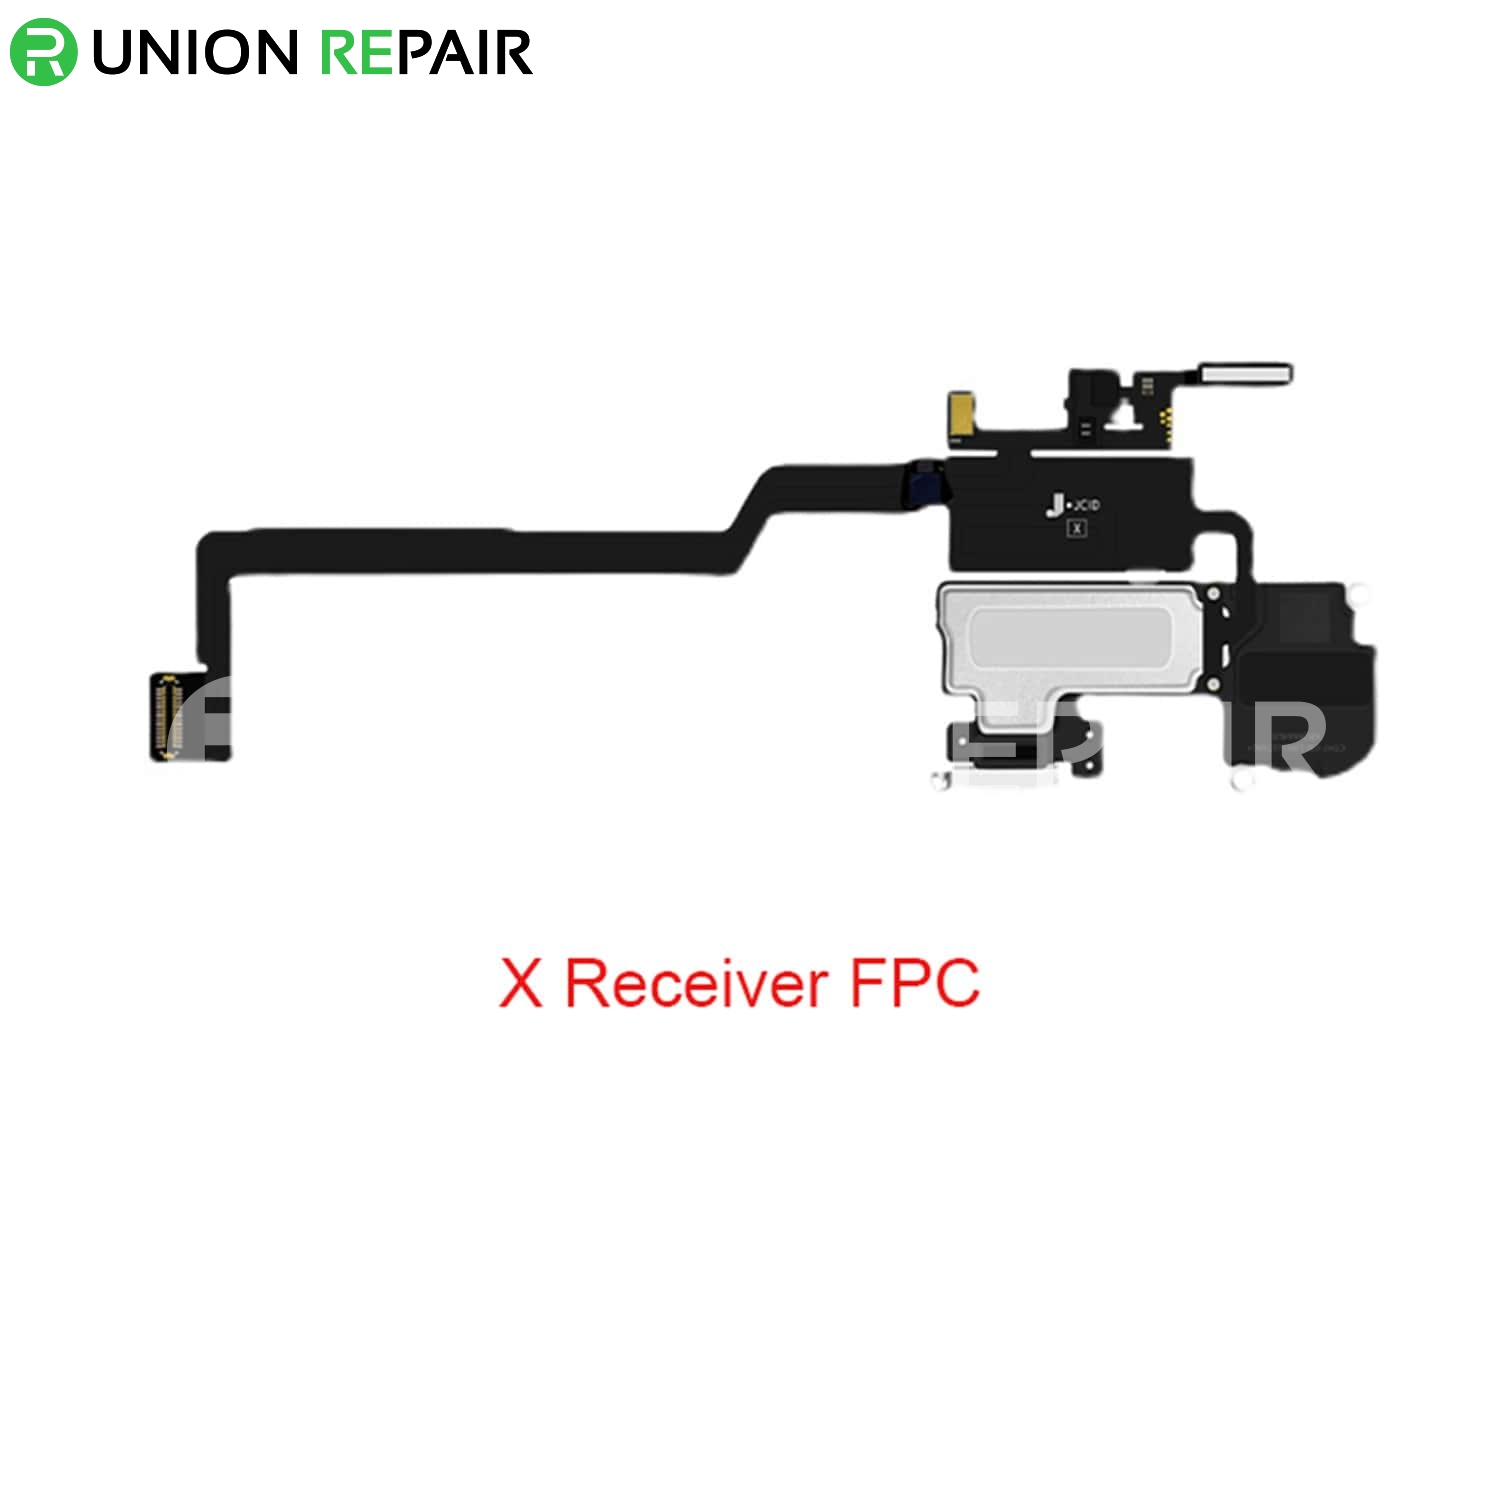 JC V1S Receiver FPC Detection Board for iPhone True Tone Face ID Repair